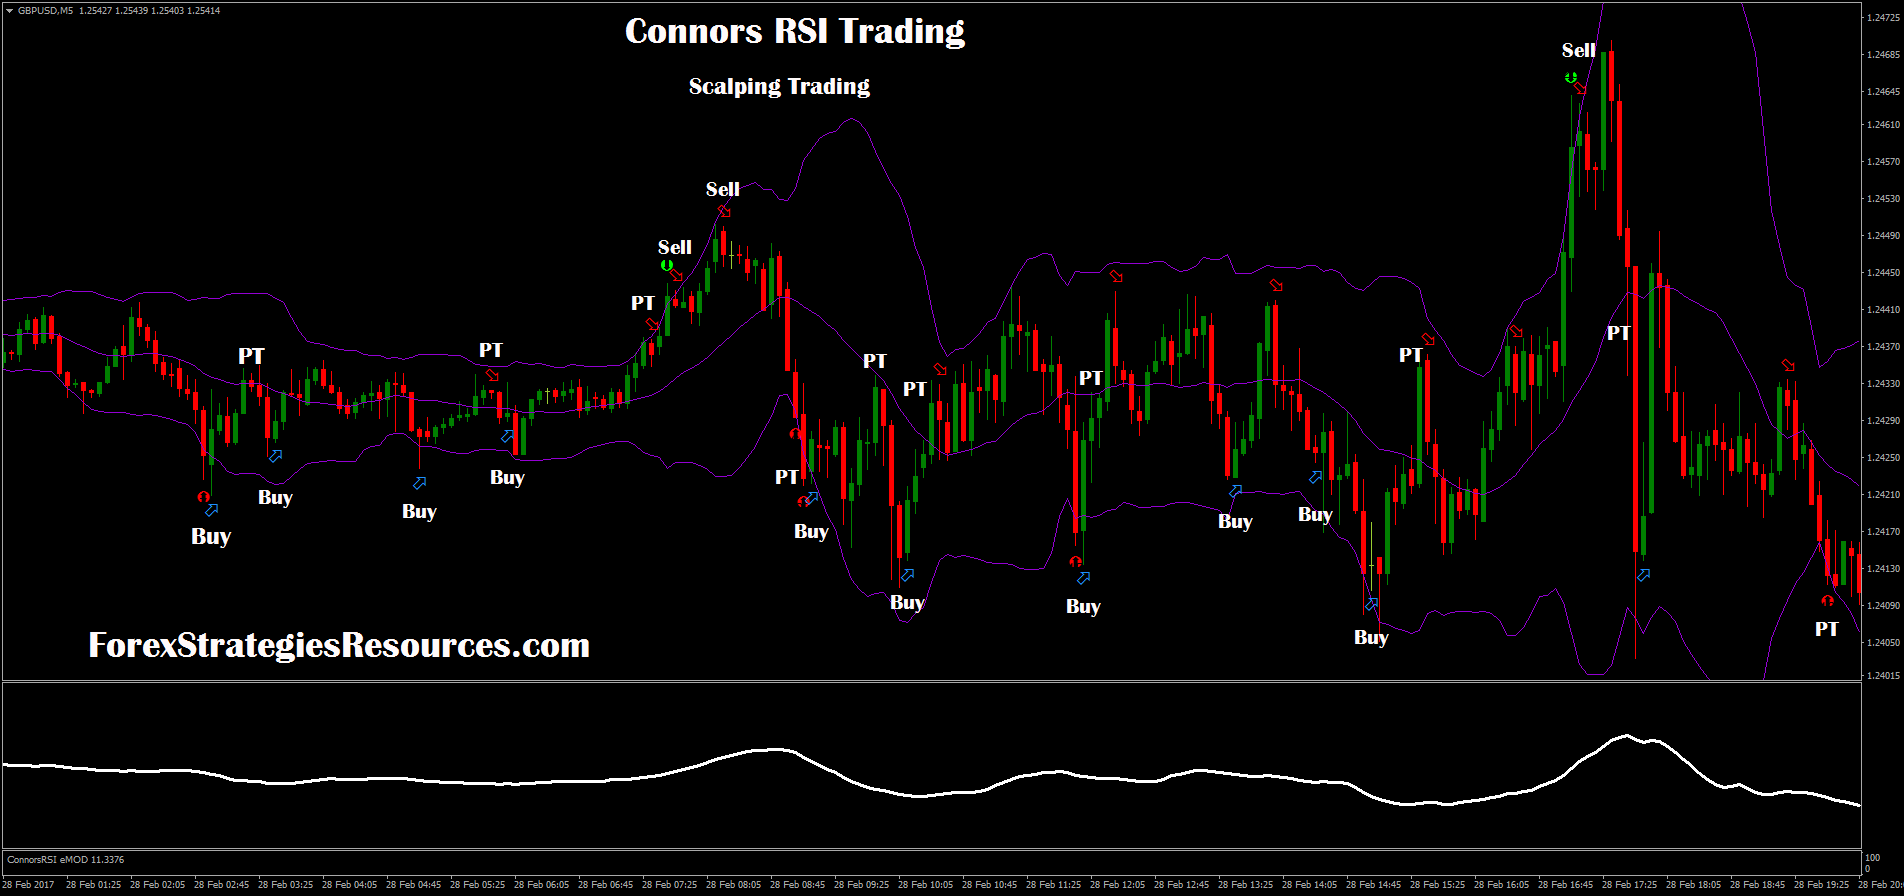 197# Connors RSI Trading - Forex Strategies - Forex Resources